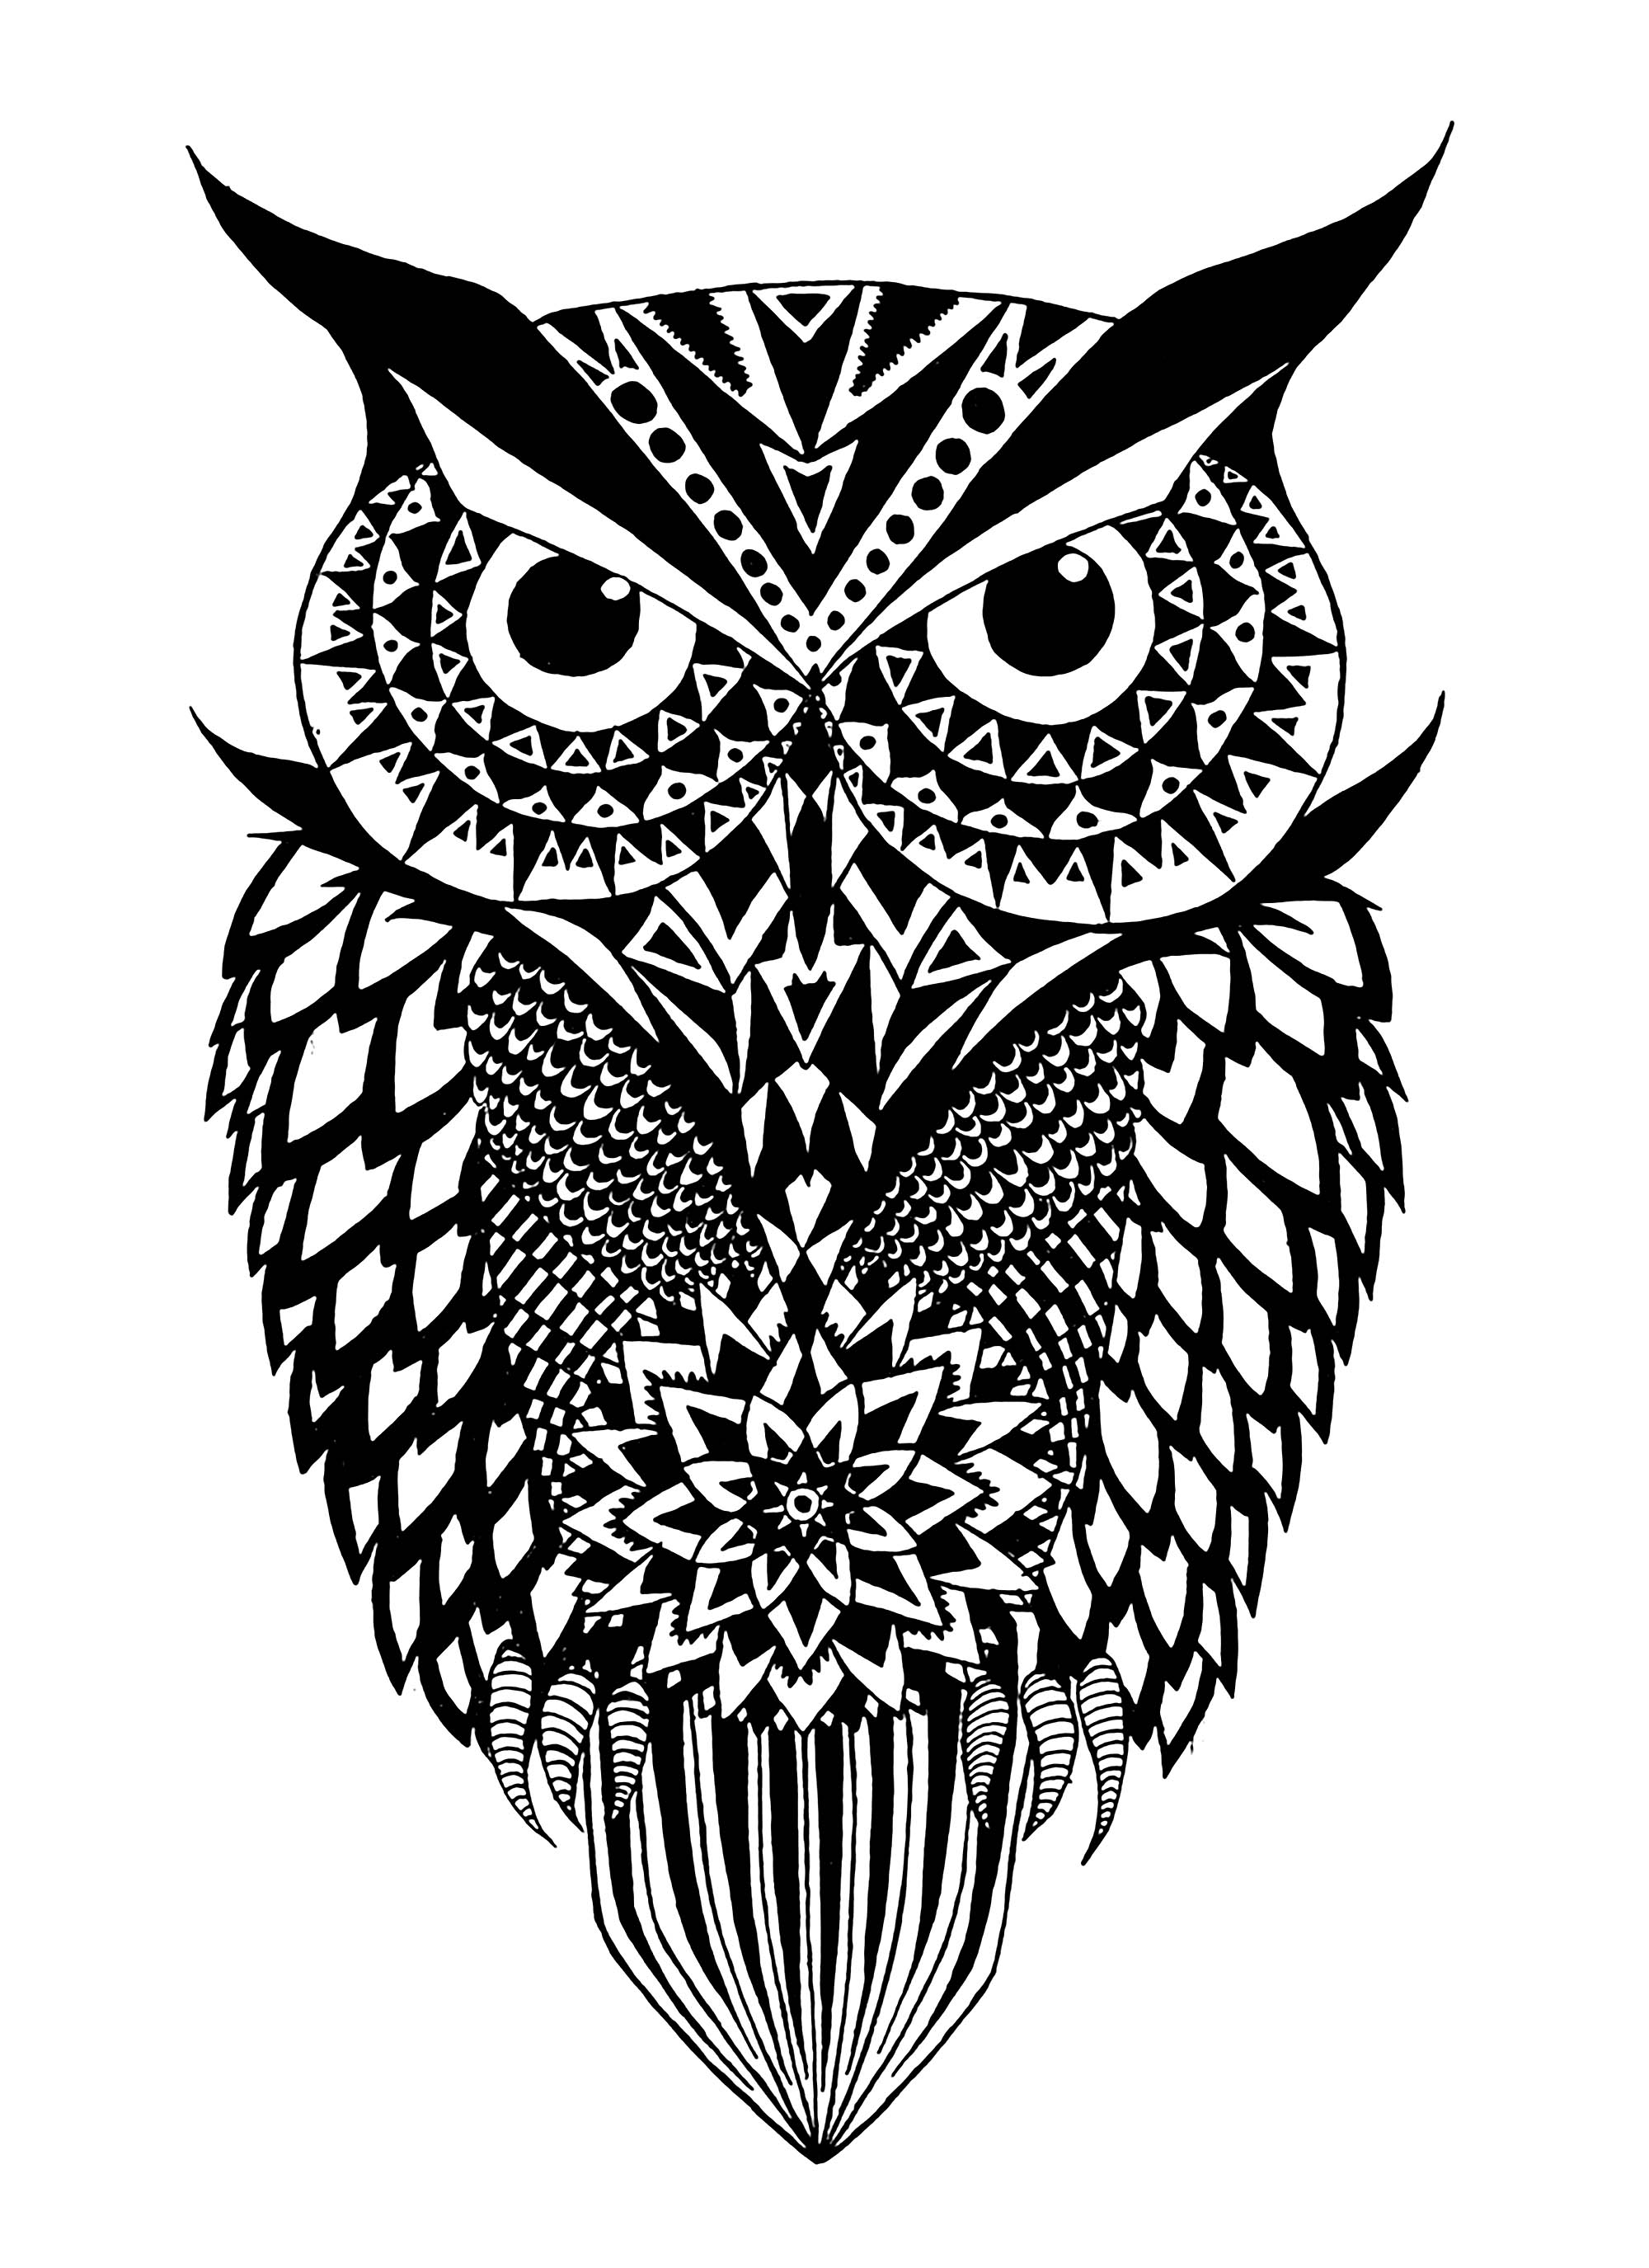 black and white coloring pages for adults oriental coloring pages for adults coloring adult coloring for and white black pages adults